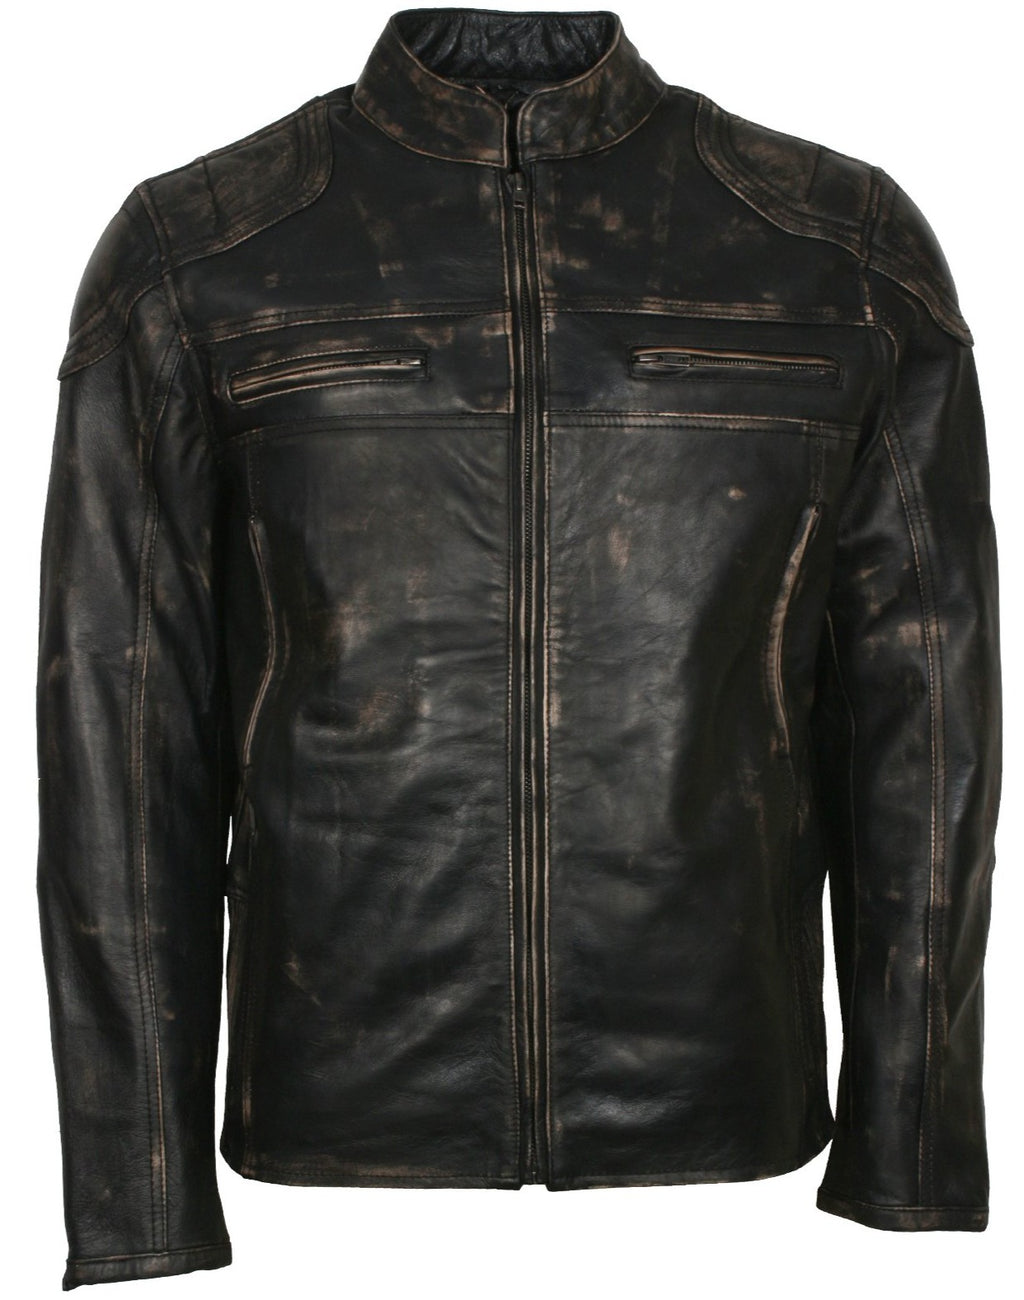 Distressed Leather Jacket Men in Black